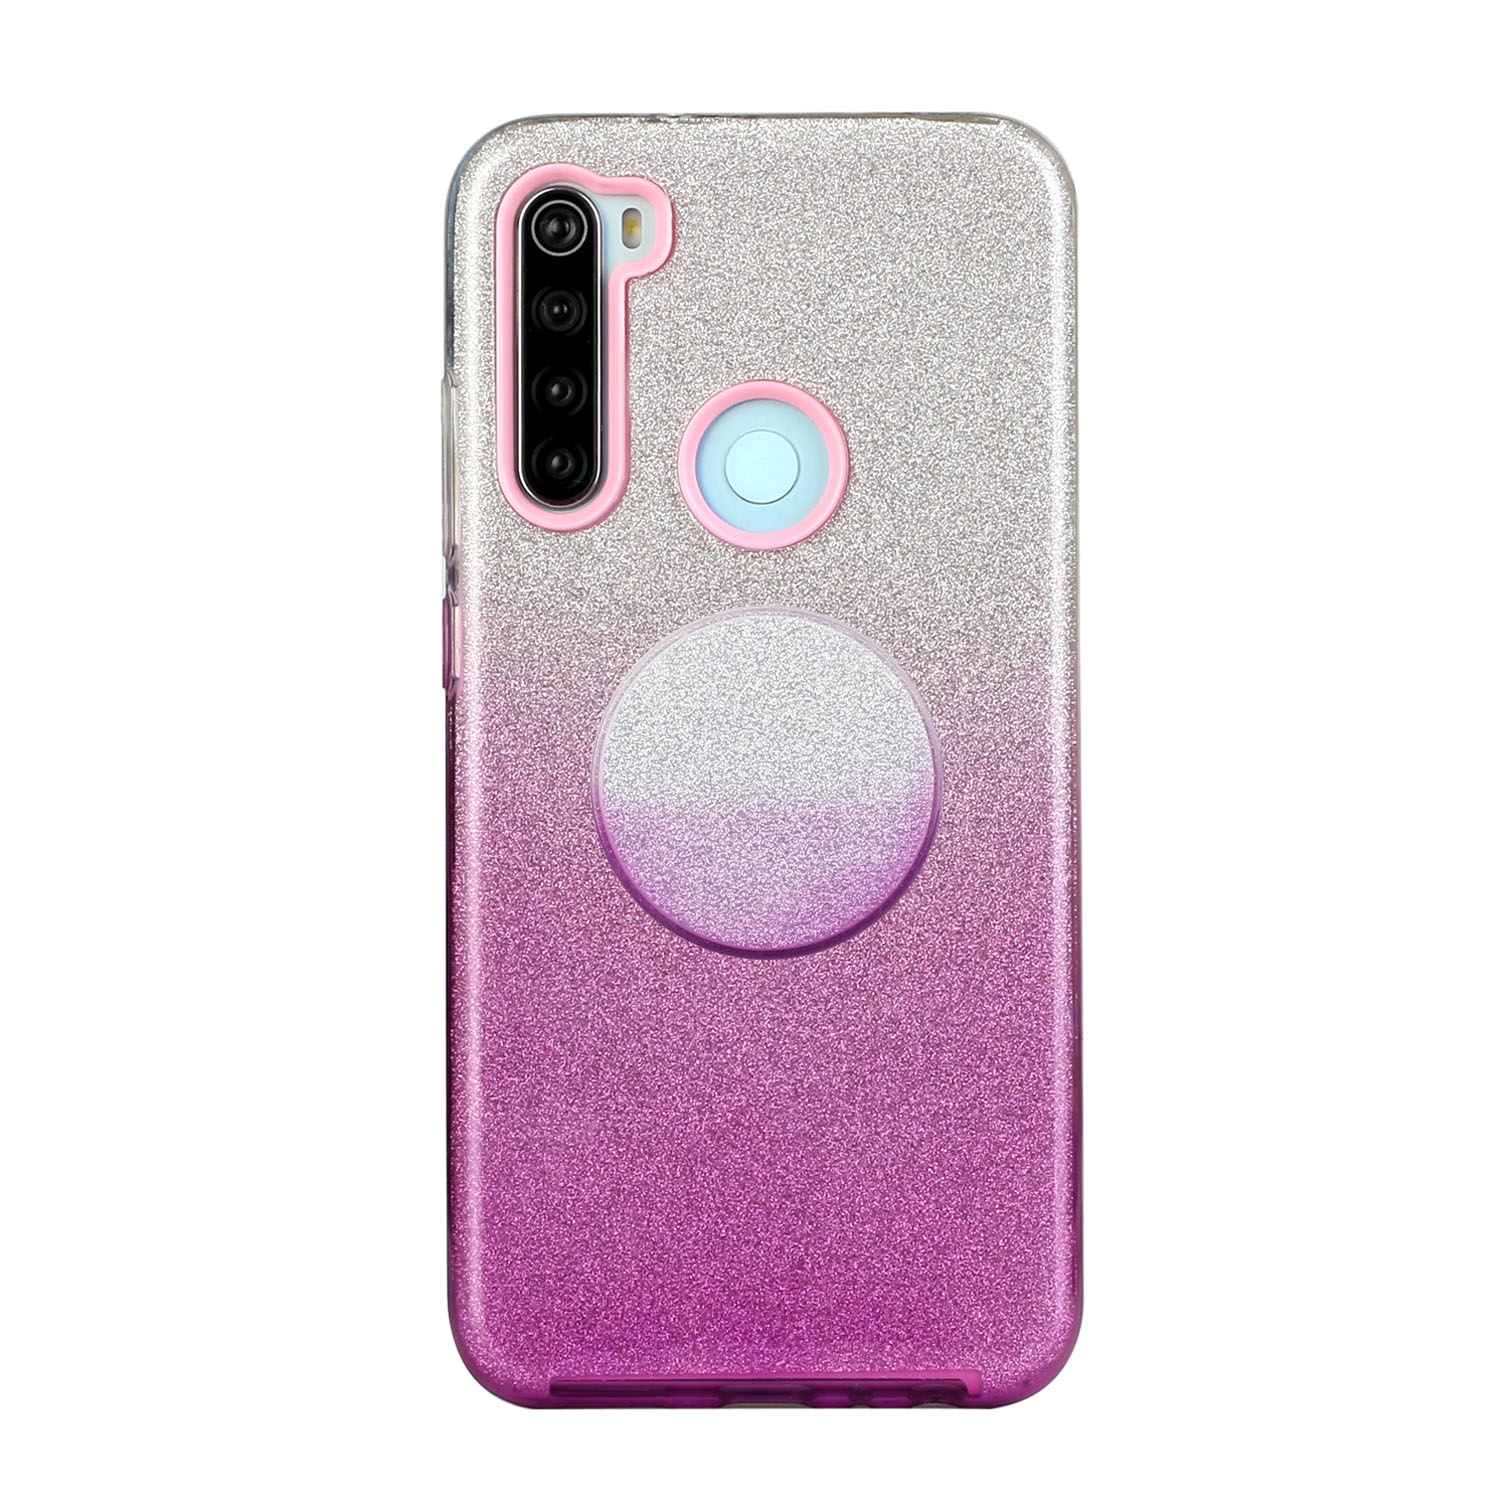 For Redmi Note 7/Note 7 pro/Note 8/Note 8 pro/8/8A Phone Case Gradient Color Glitter Powder Phone Cover with Airbag Bracket purple